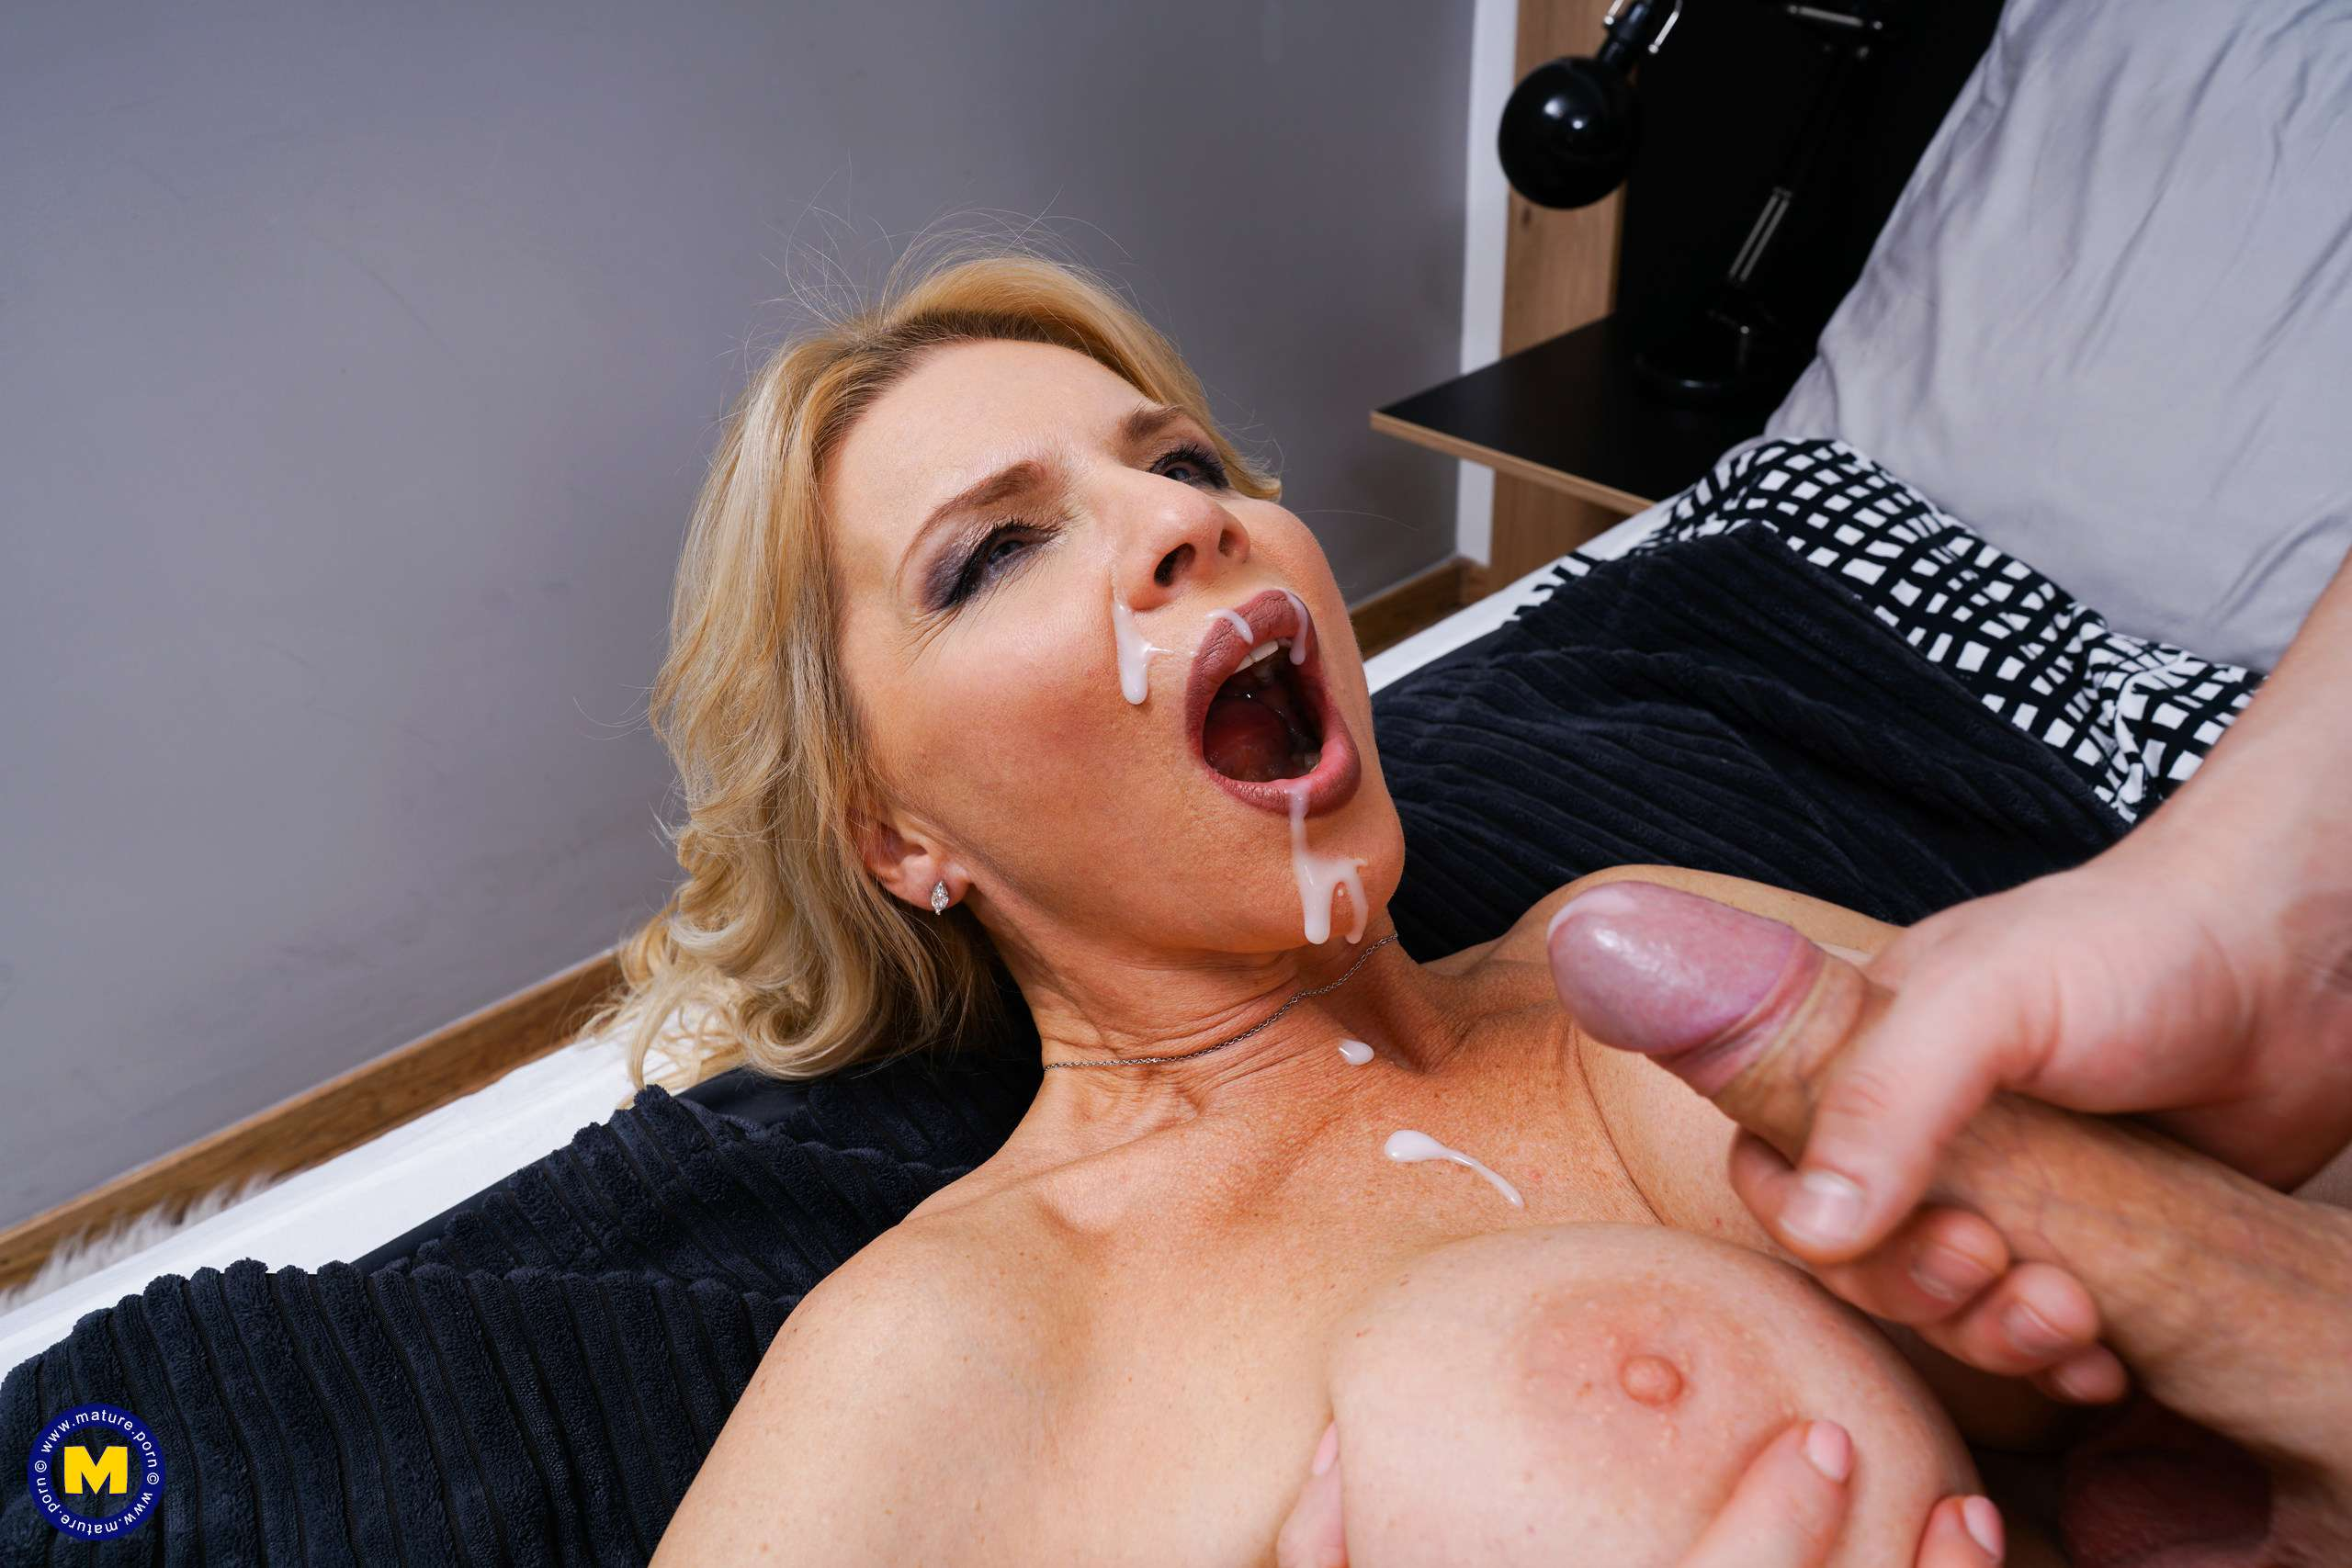 Naughty hot steamy MILF getting mouthfucked by her toy boy